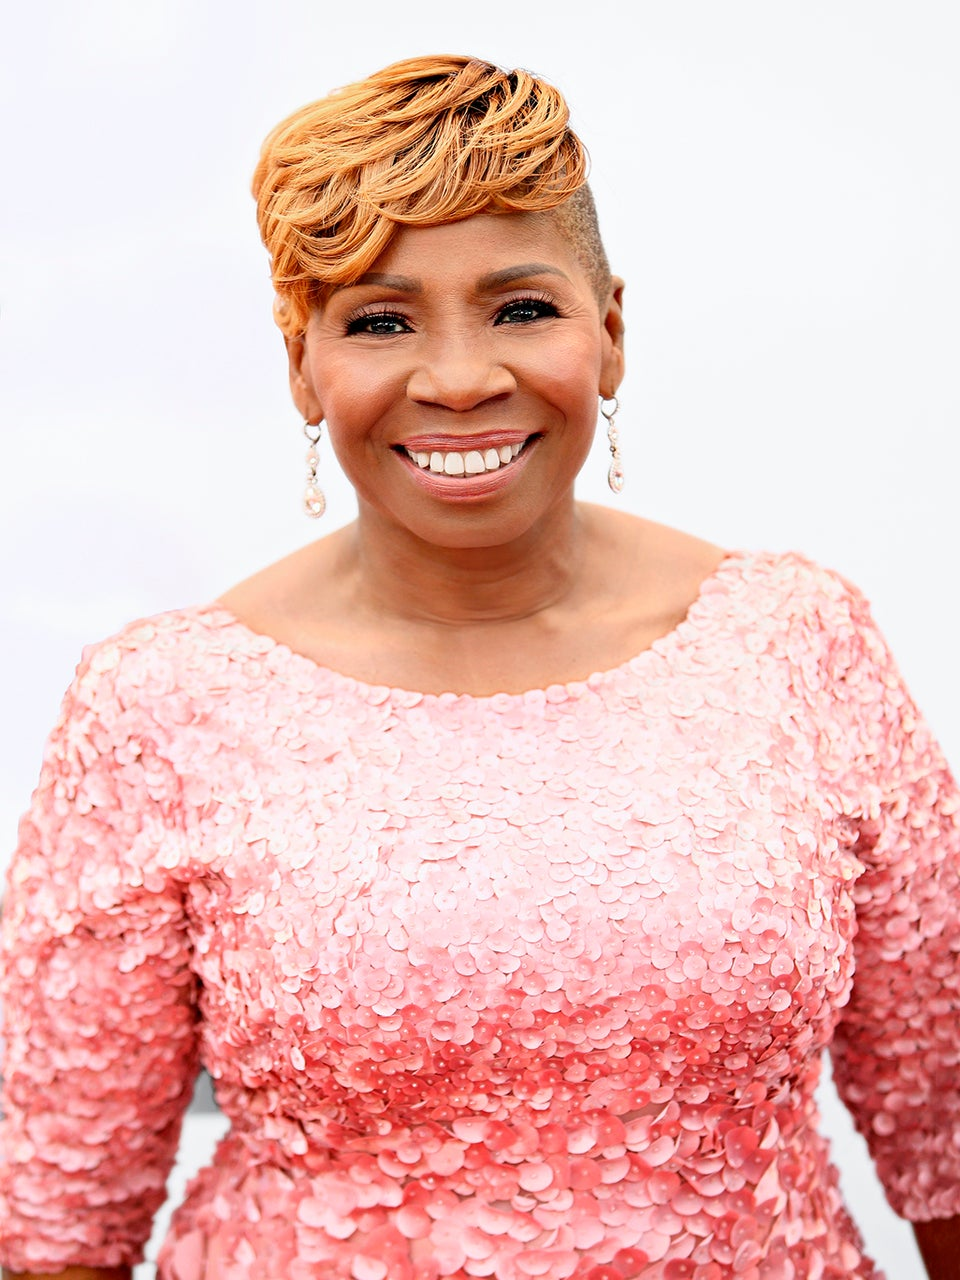 Exclusive: Iyanla Vanzant Opens Up About The Medical Emergency That Nearly Killed Her